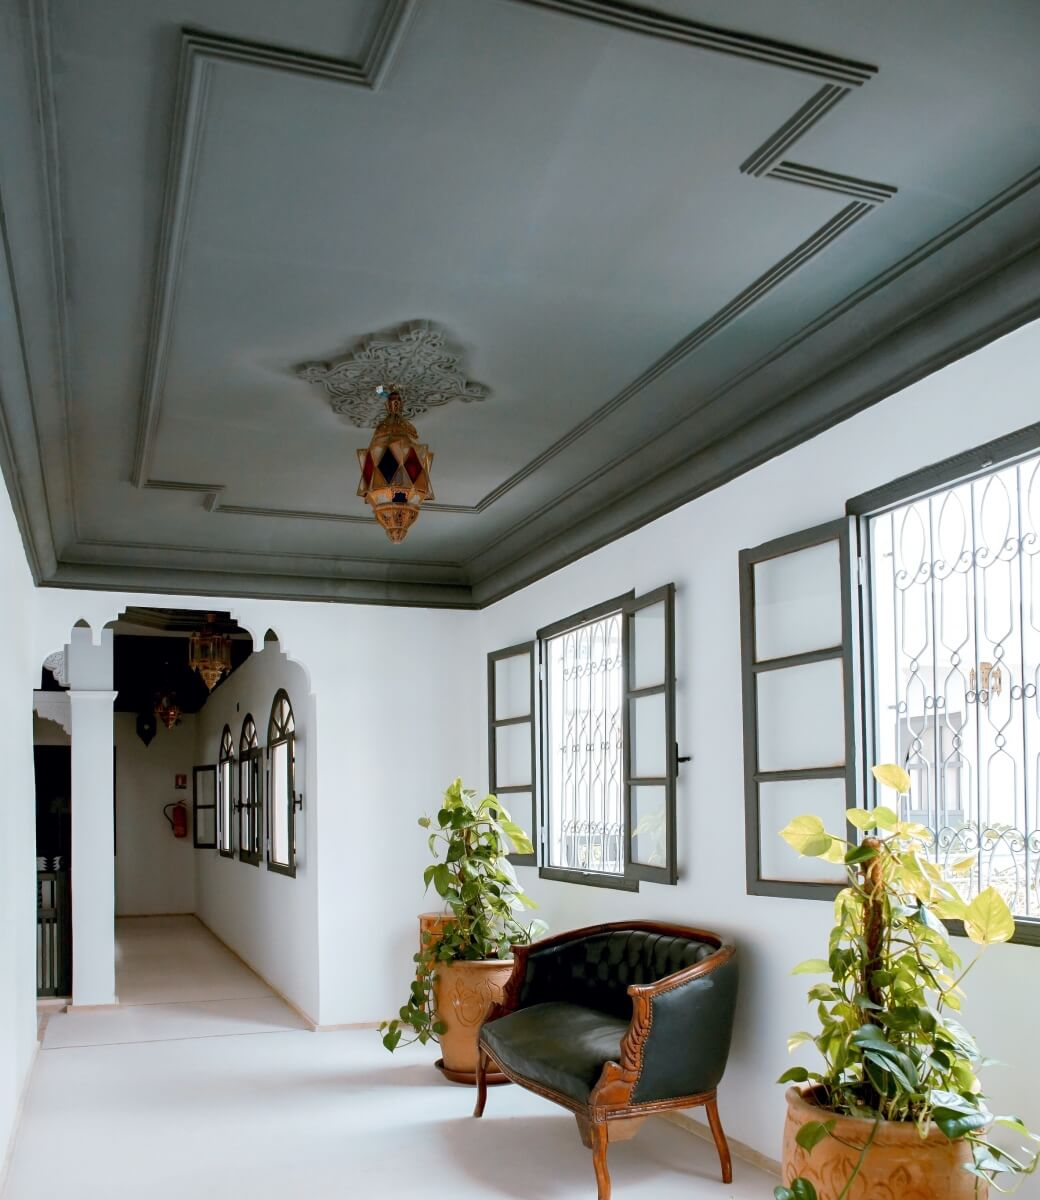 Applied molding on a ceiling can make a beautiful statement, photography by Toa Heftiba